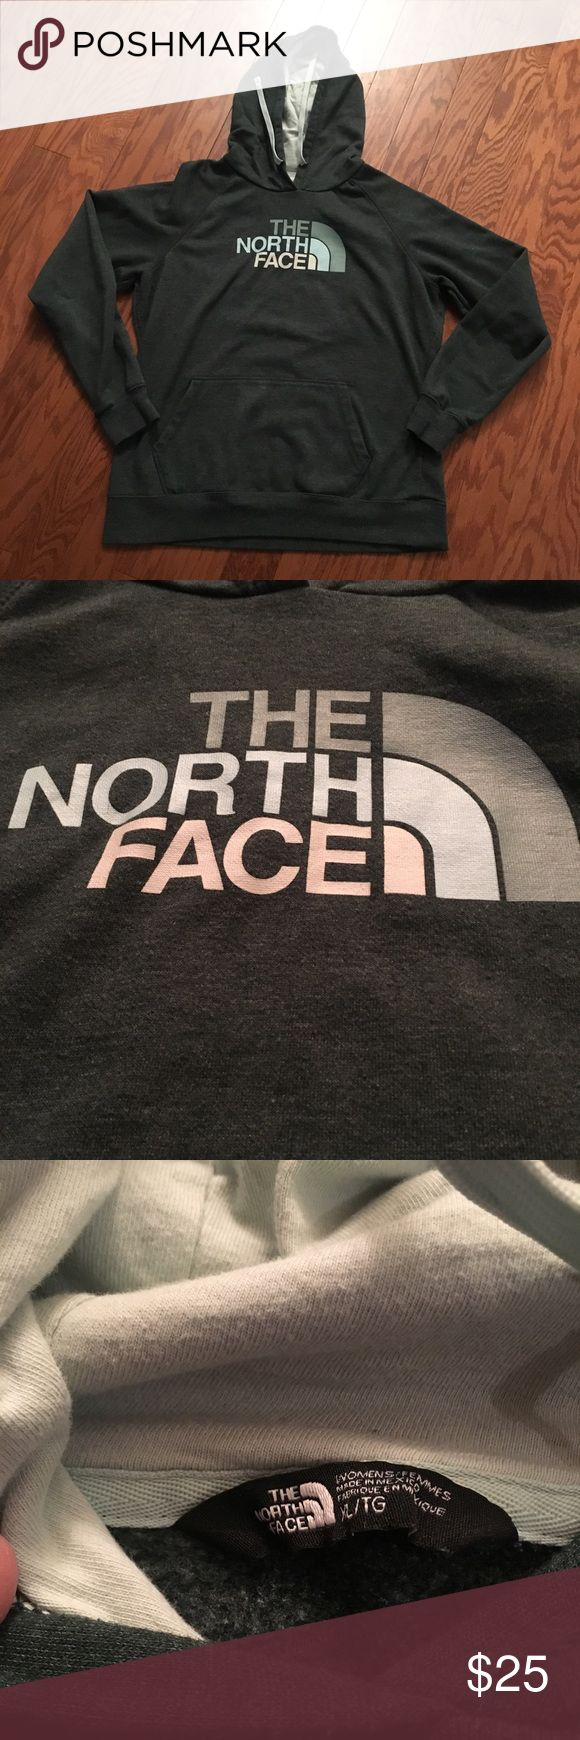 North Face hoodie North Face logo hoodie, dark green with light green lined hood. The North Face Tops Sweatshirts & Hoodies